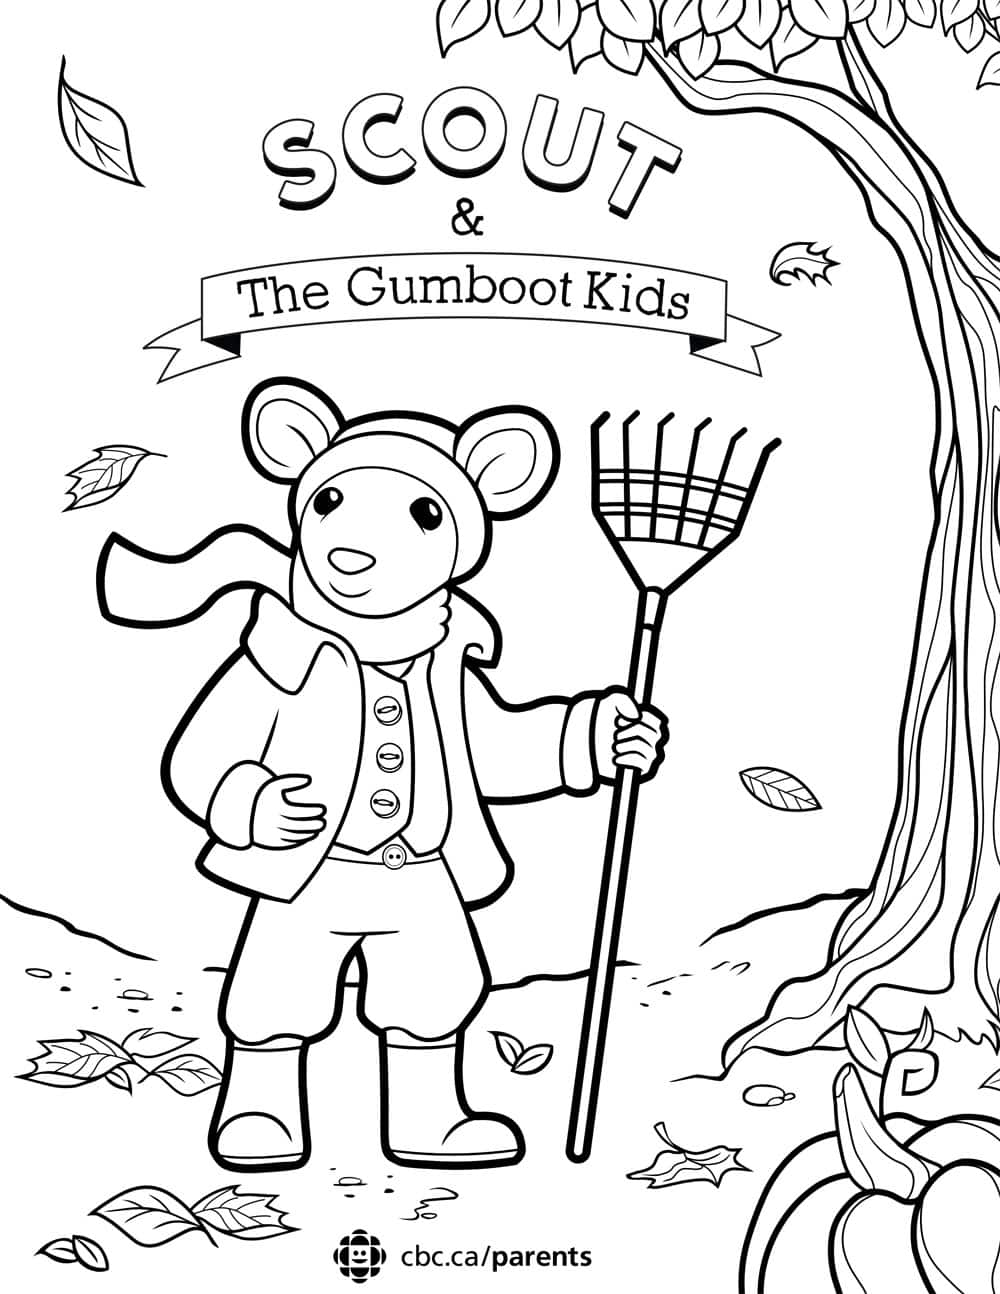 Colouring Together: Why Colouring Is Great For Kids And